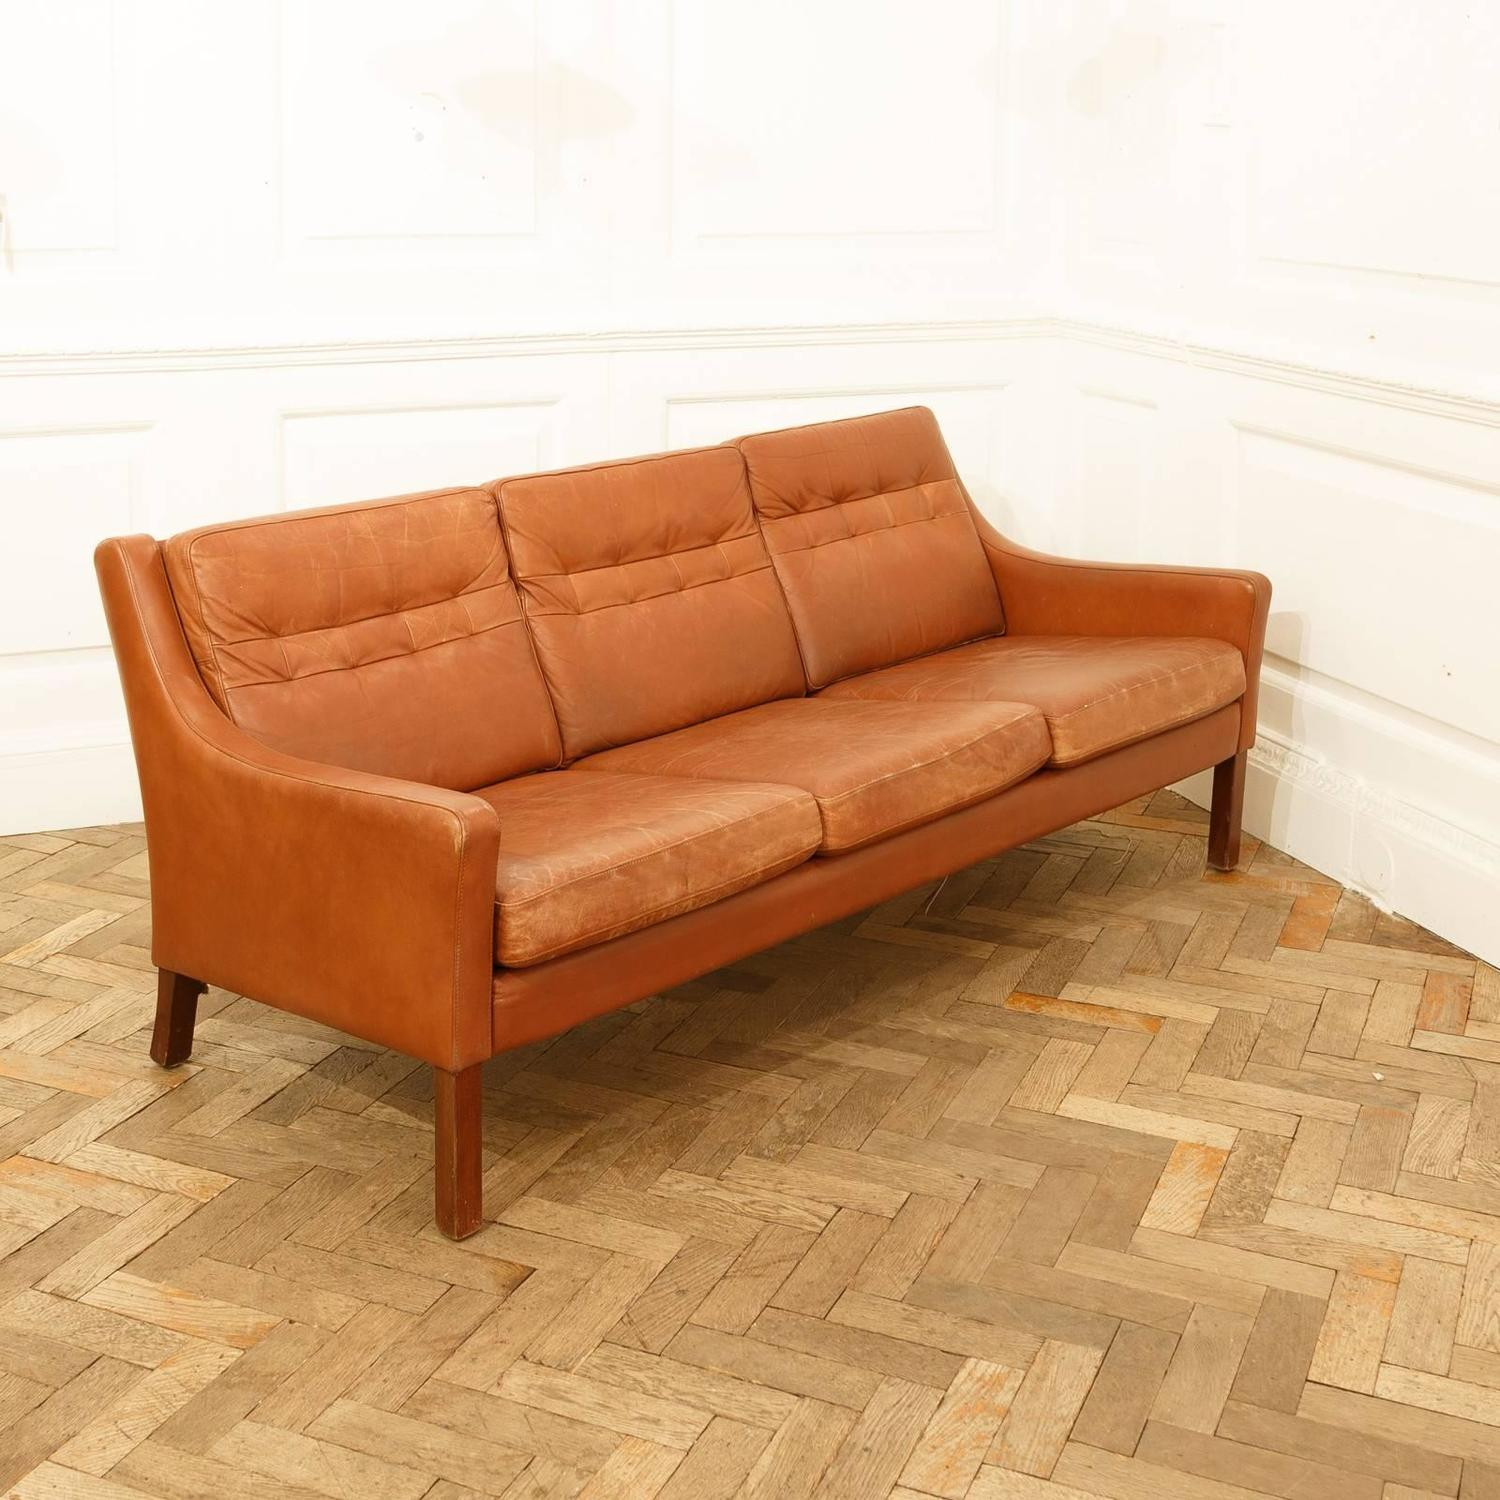 1960s cognac leather sofa after b rge mogensen 2213 at 1stdibs. Black Bedroom Furniture Sets. Home Design Ideas